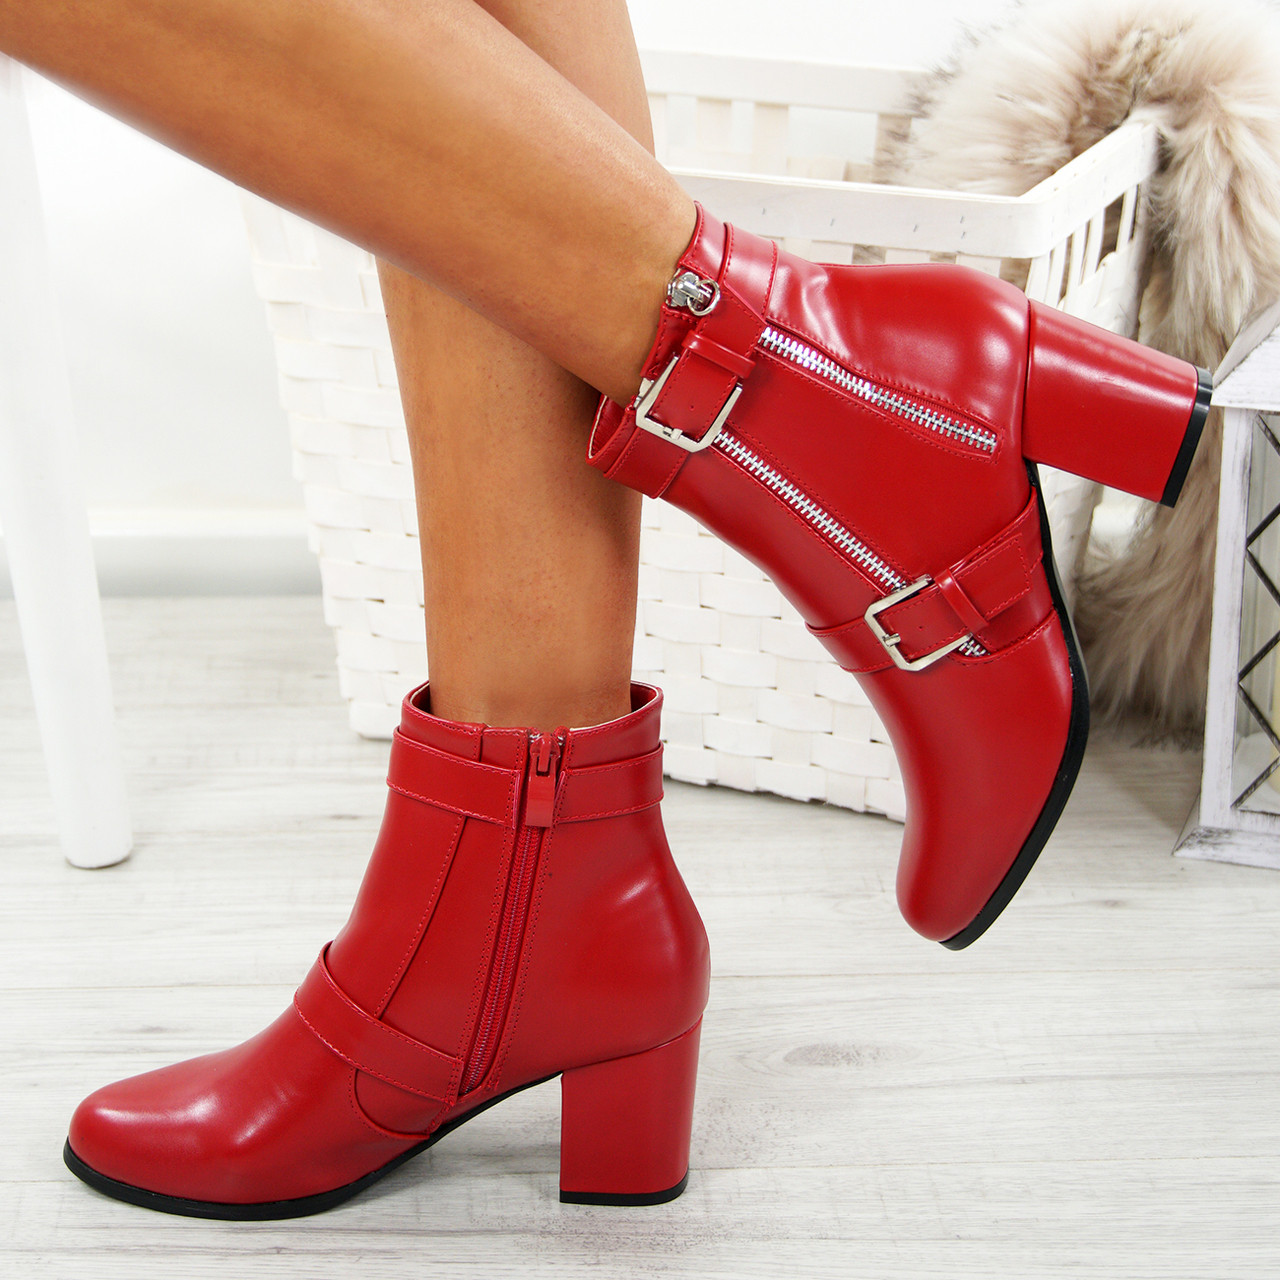 792a9b4a651 Faber Block Heel Red Ankle Boots